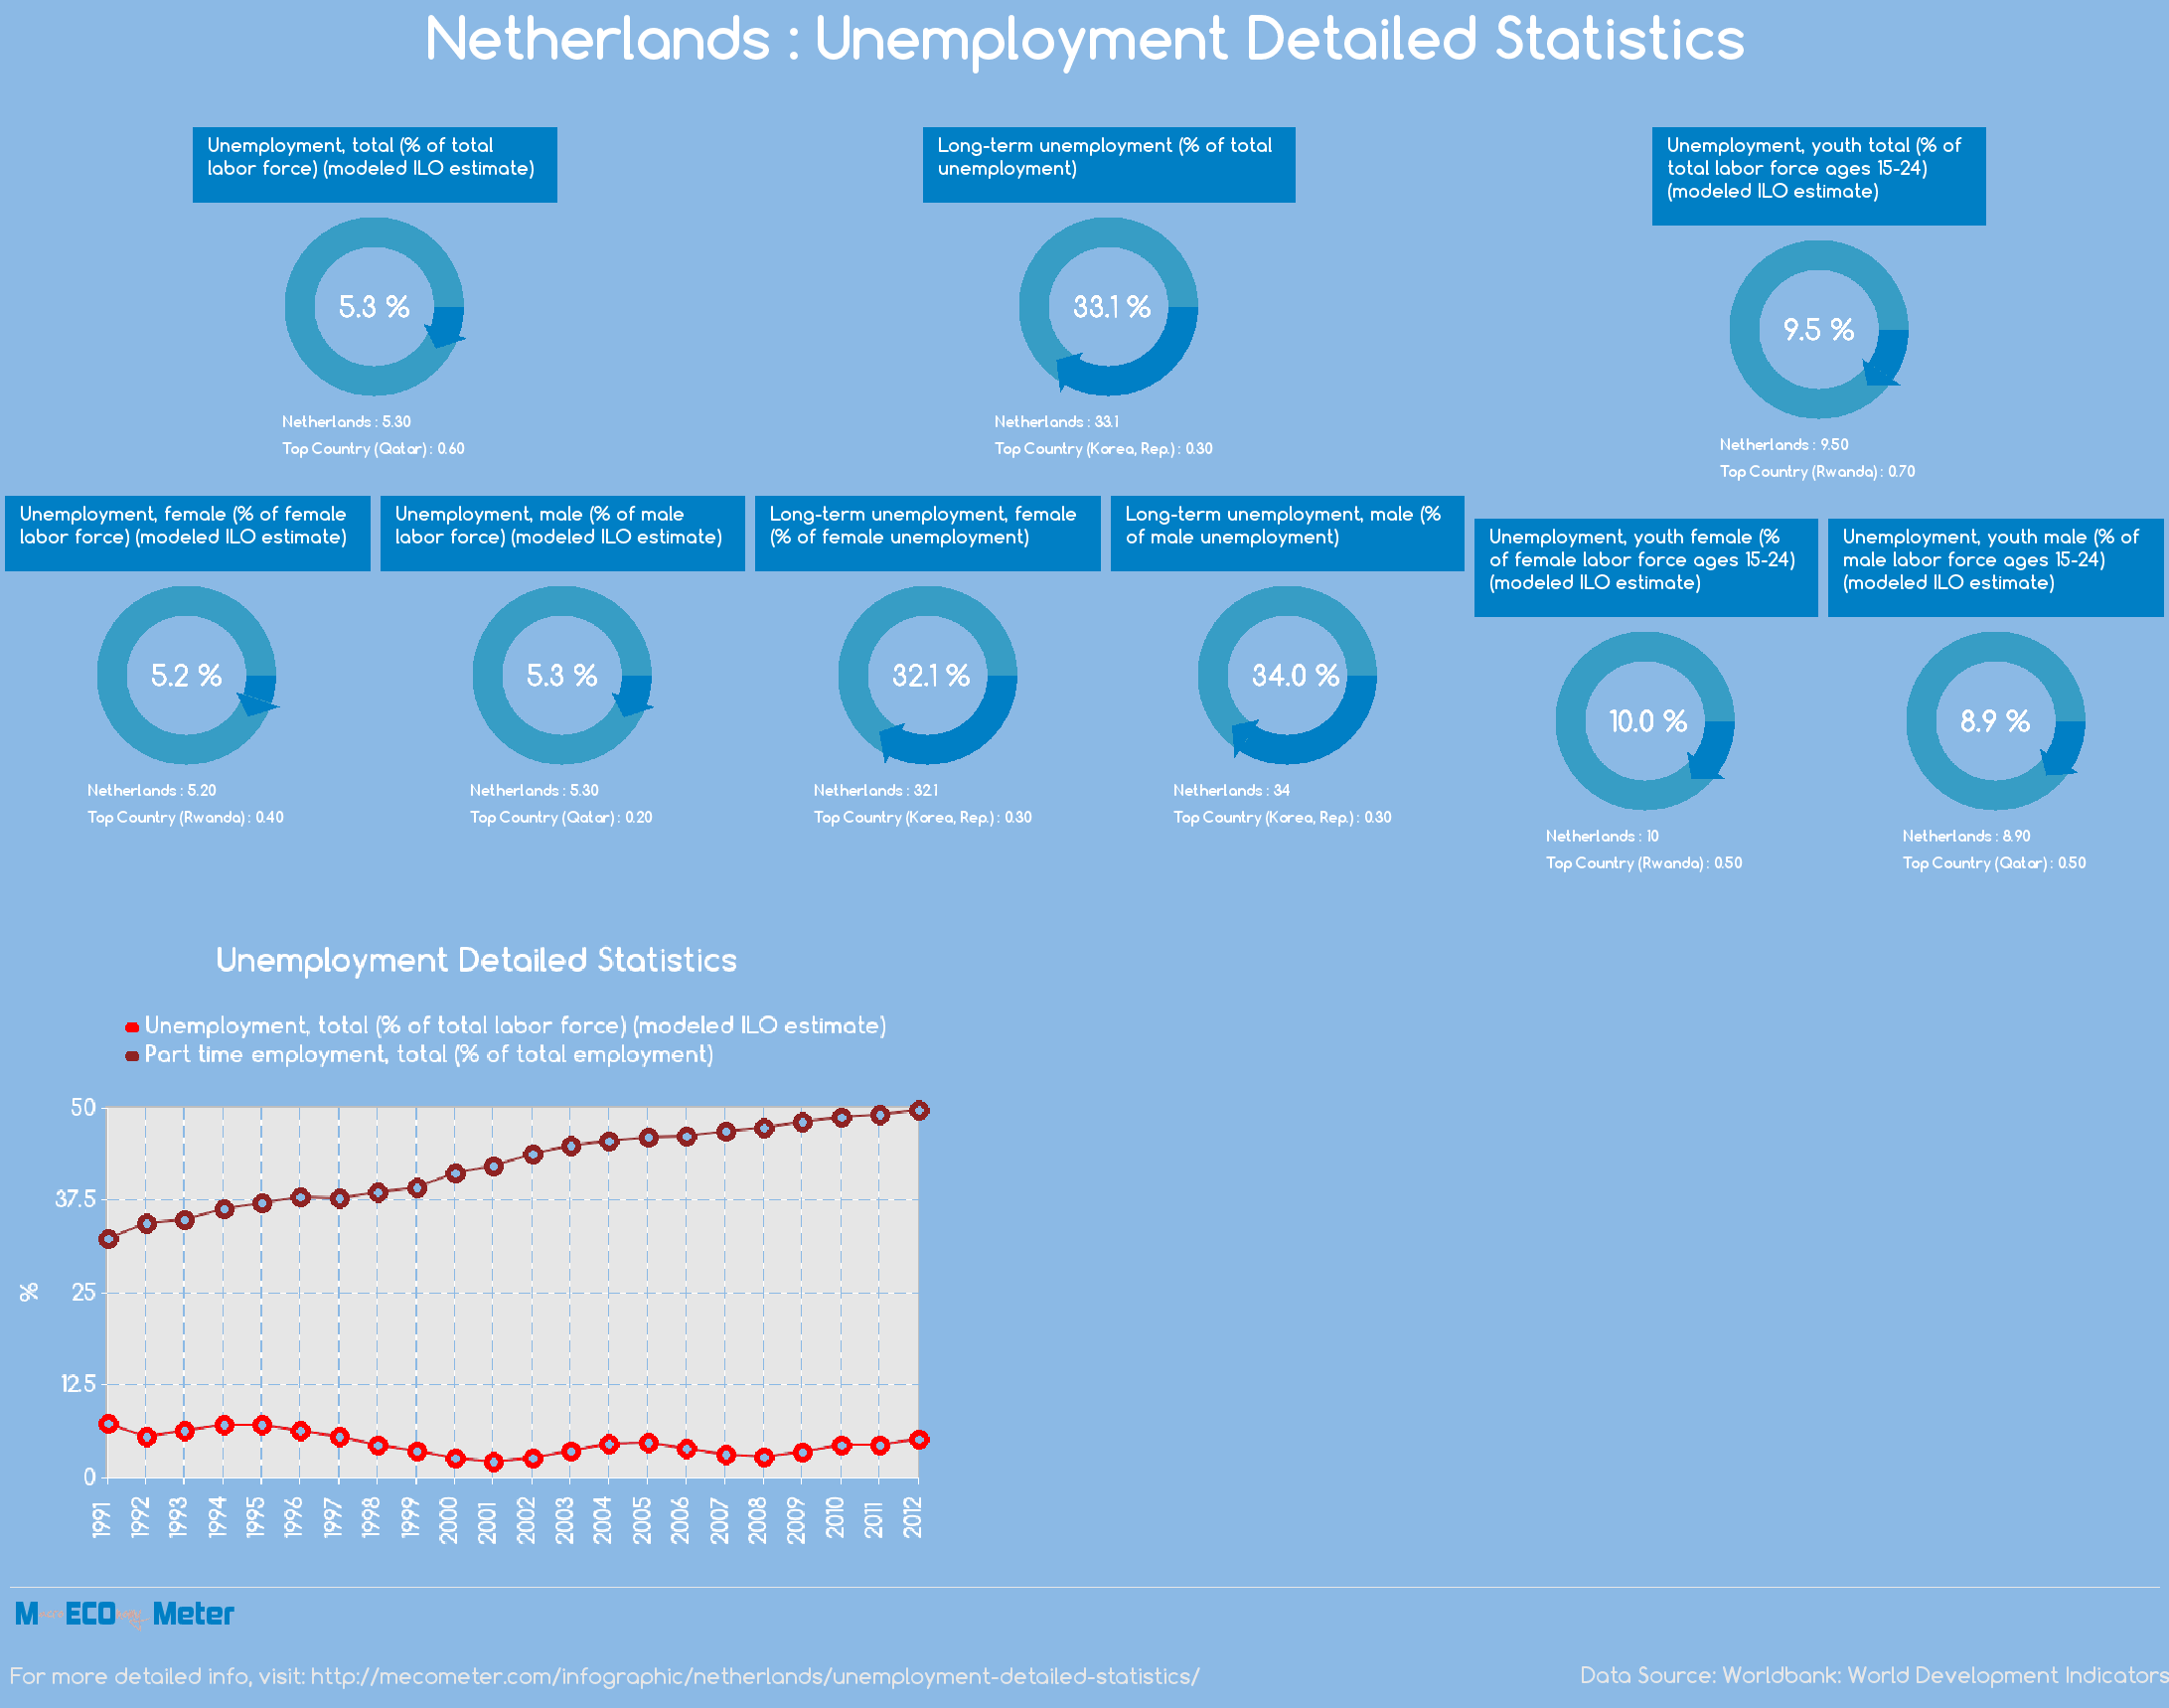 Netherlands : Unemployment Detailed Statistics